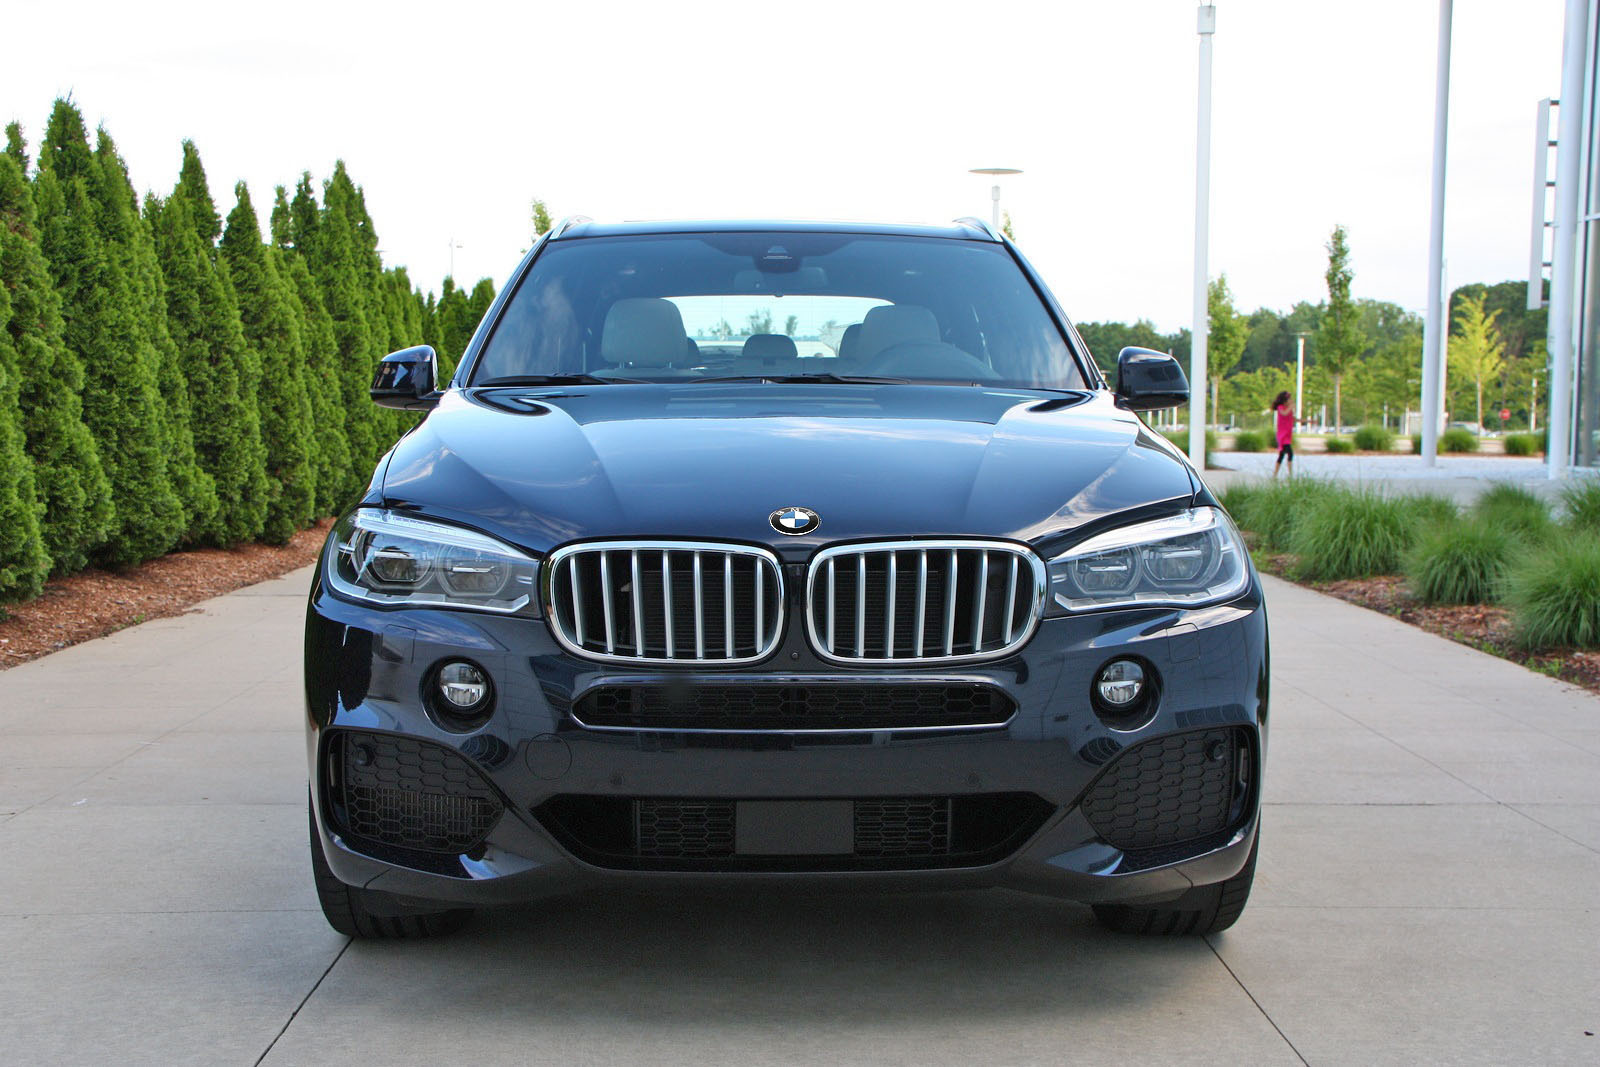 2019 BMW X5 M Package photo - 5